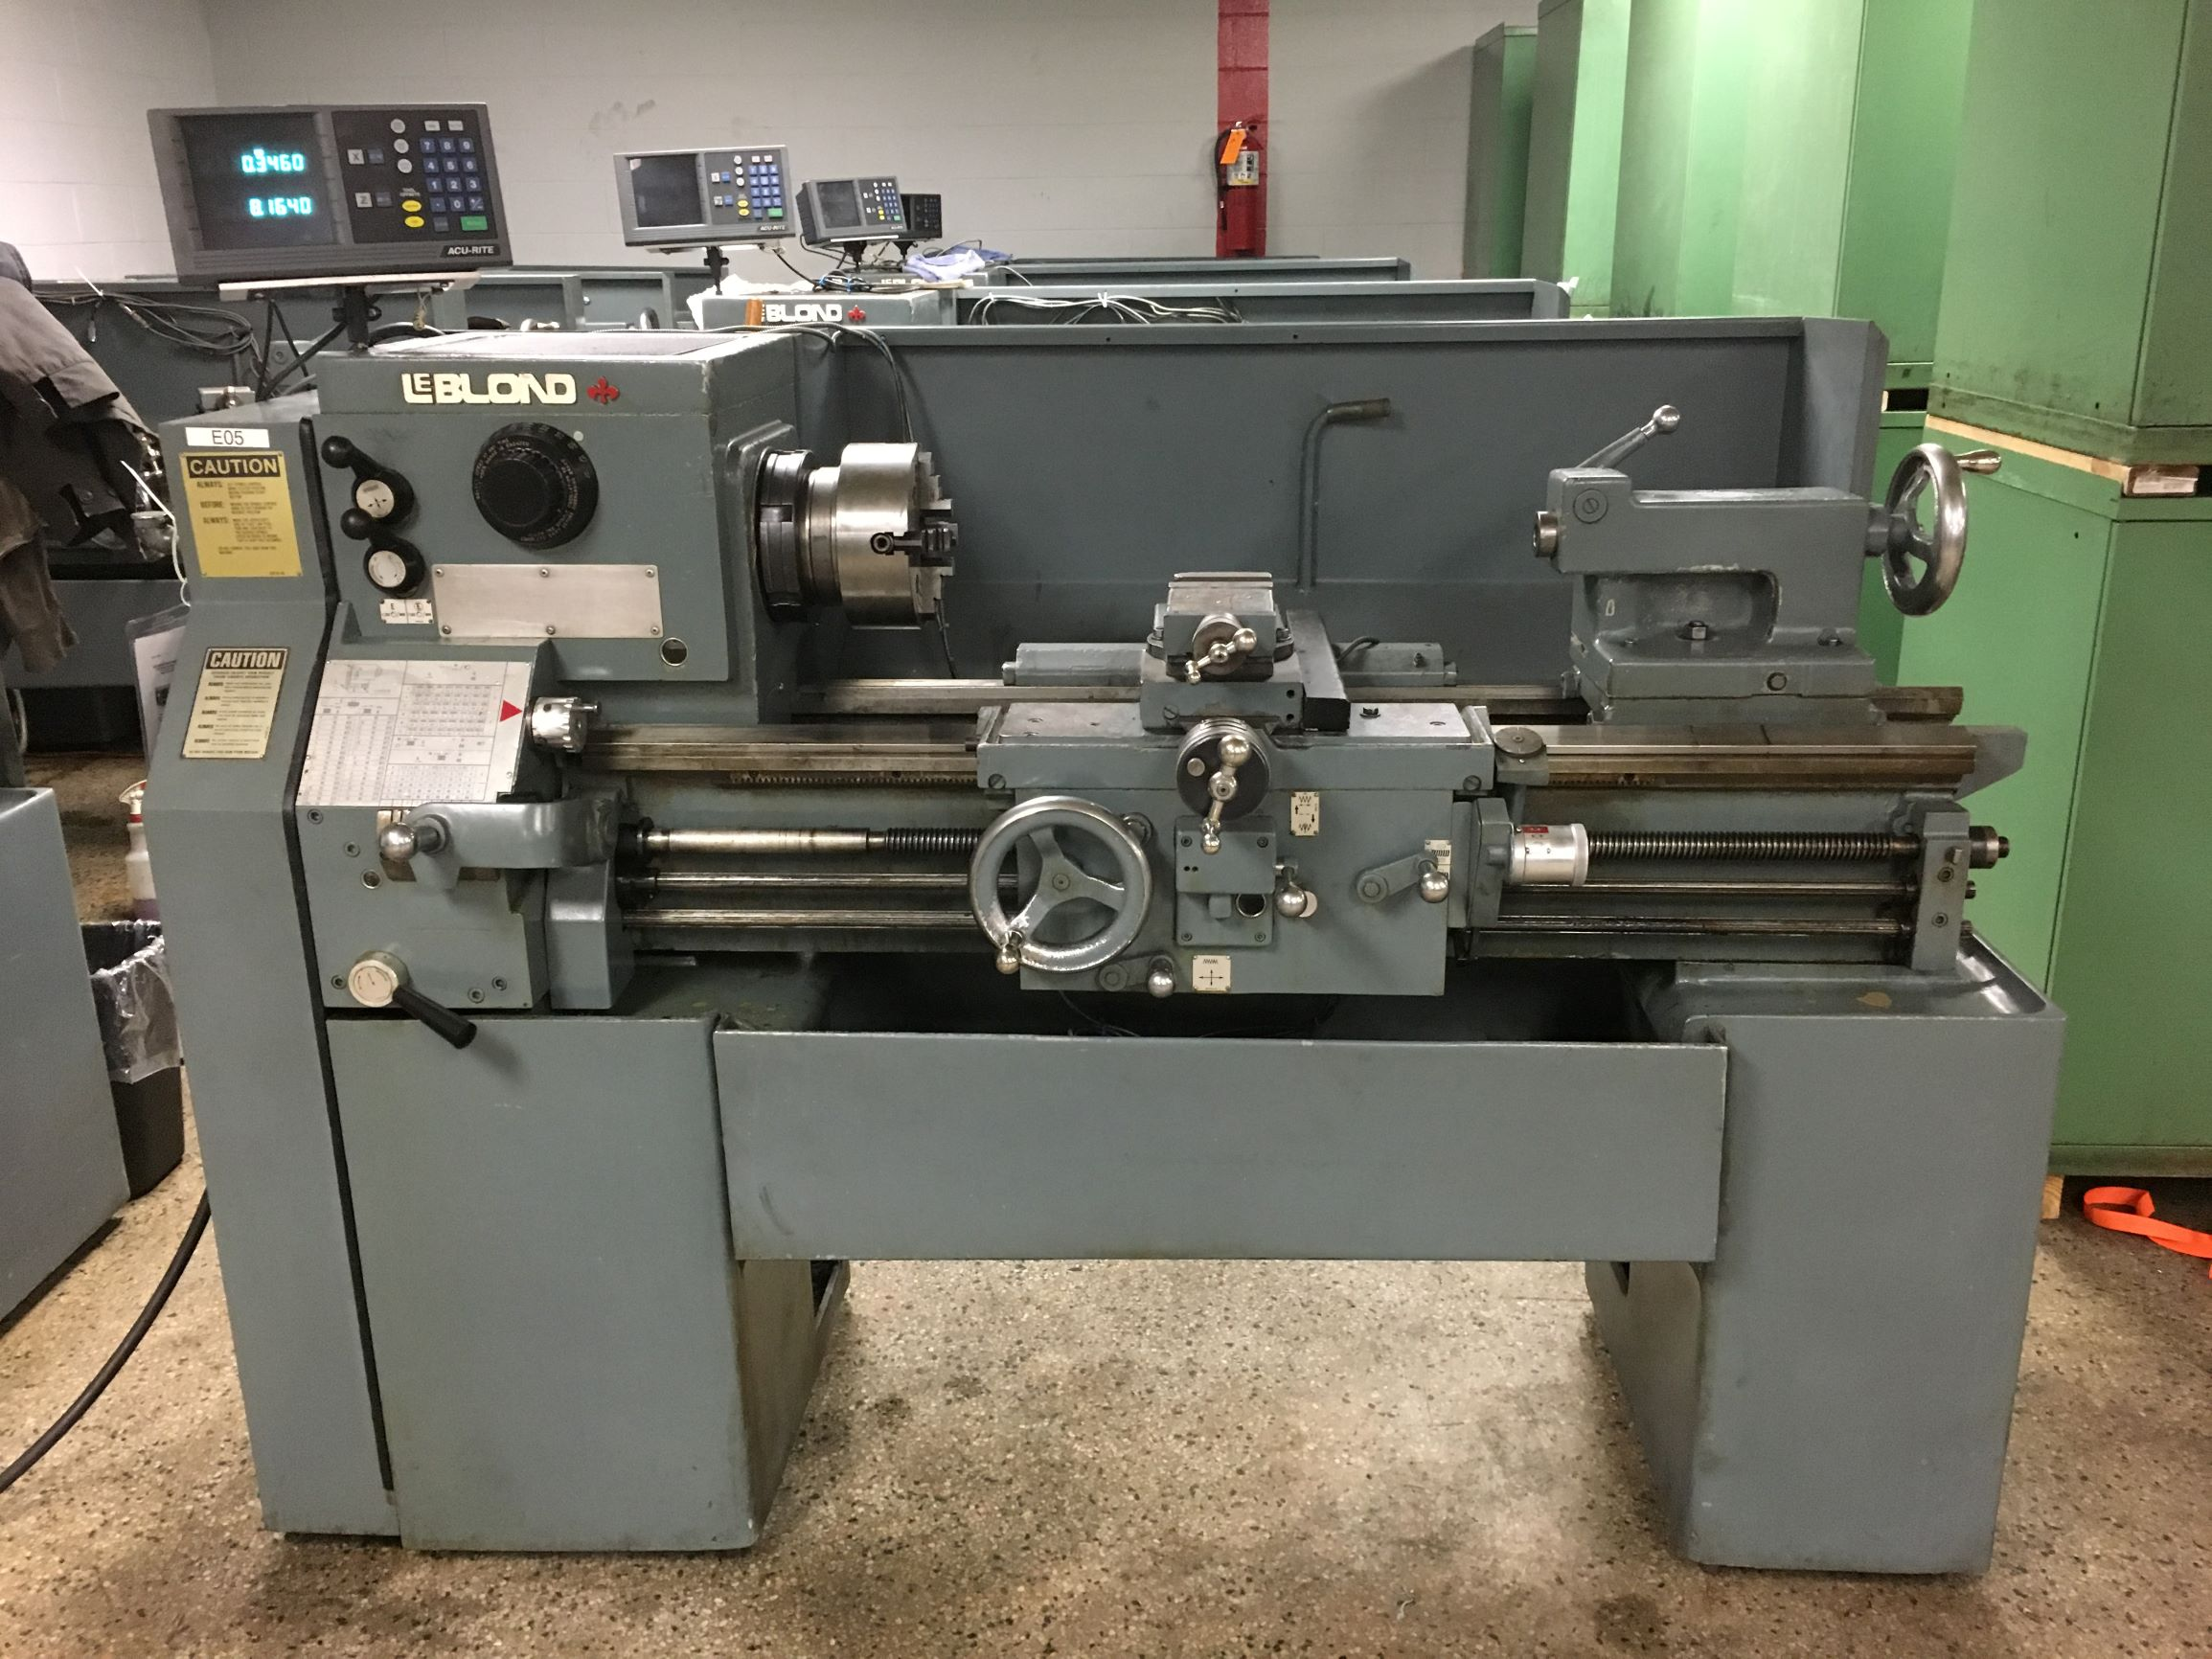 "15"" x 30"" LeBlond Regal Servo Shift Engine Lathe, S/N 12C-596/x3659."